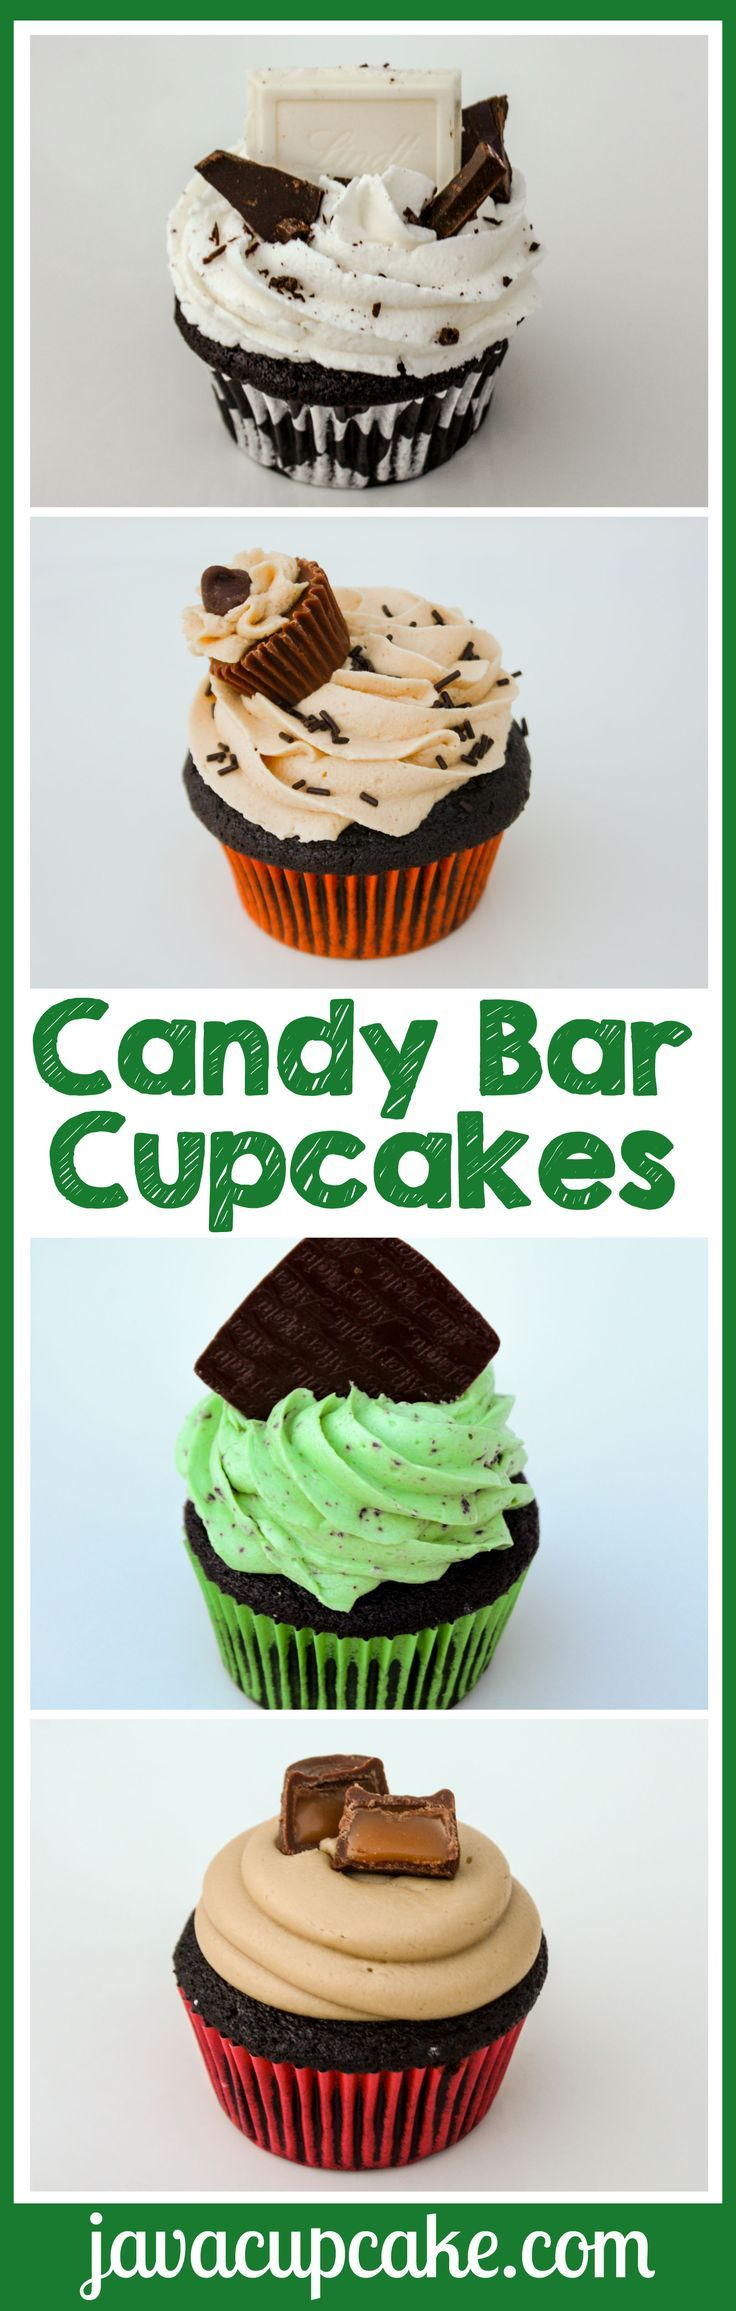 Rich dark chocolate cupcakes made into four very different, extremely delectable, incredibly delicious candy bar-inspired cupcakes! -http://JavaCupcake.com